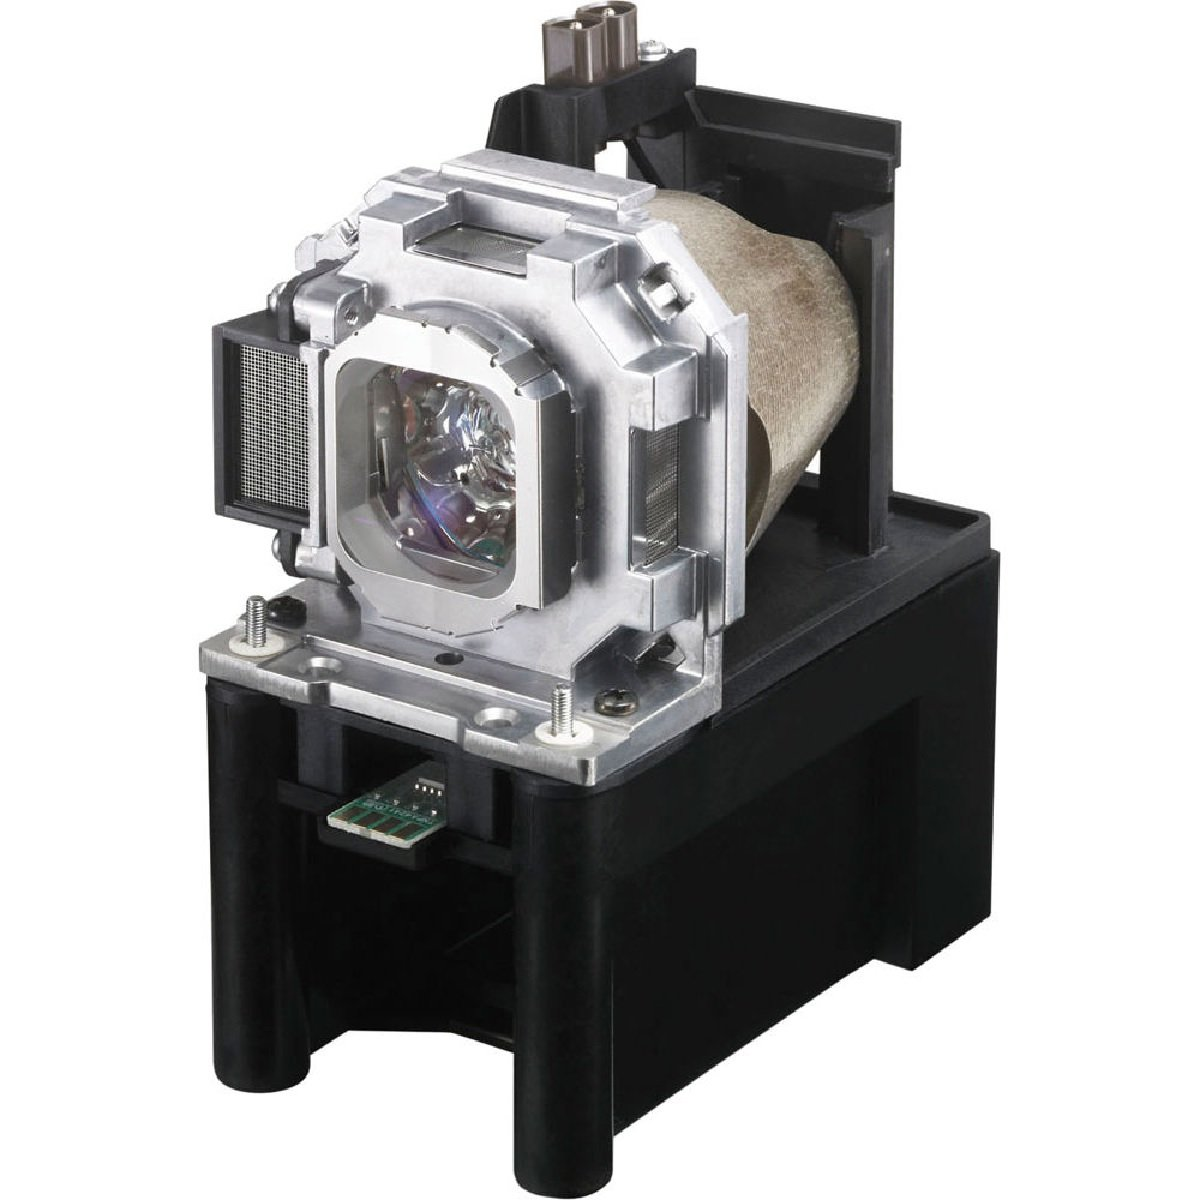 Amazing Lamps ET-LAF100 SUPERIOR SERIES - New and Improved Technology - 1 Year Warranty - Replacement Lamp with Housing for Panasonic Projectors - Crystal Clear, Brighter Picture - Superior Quality